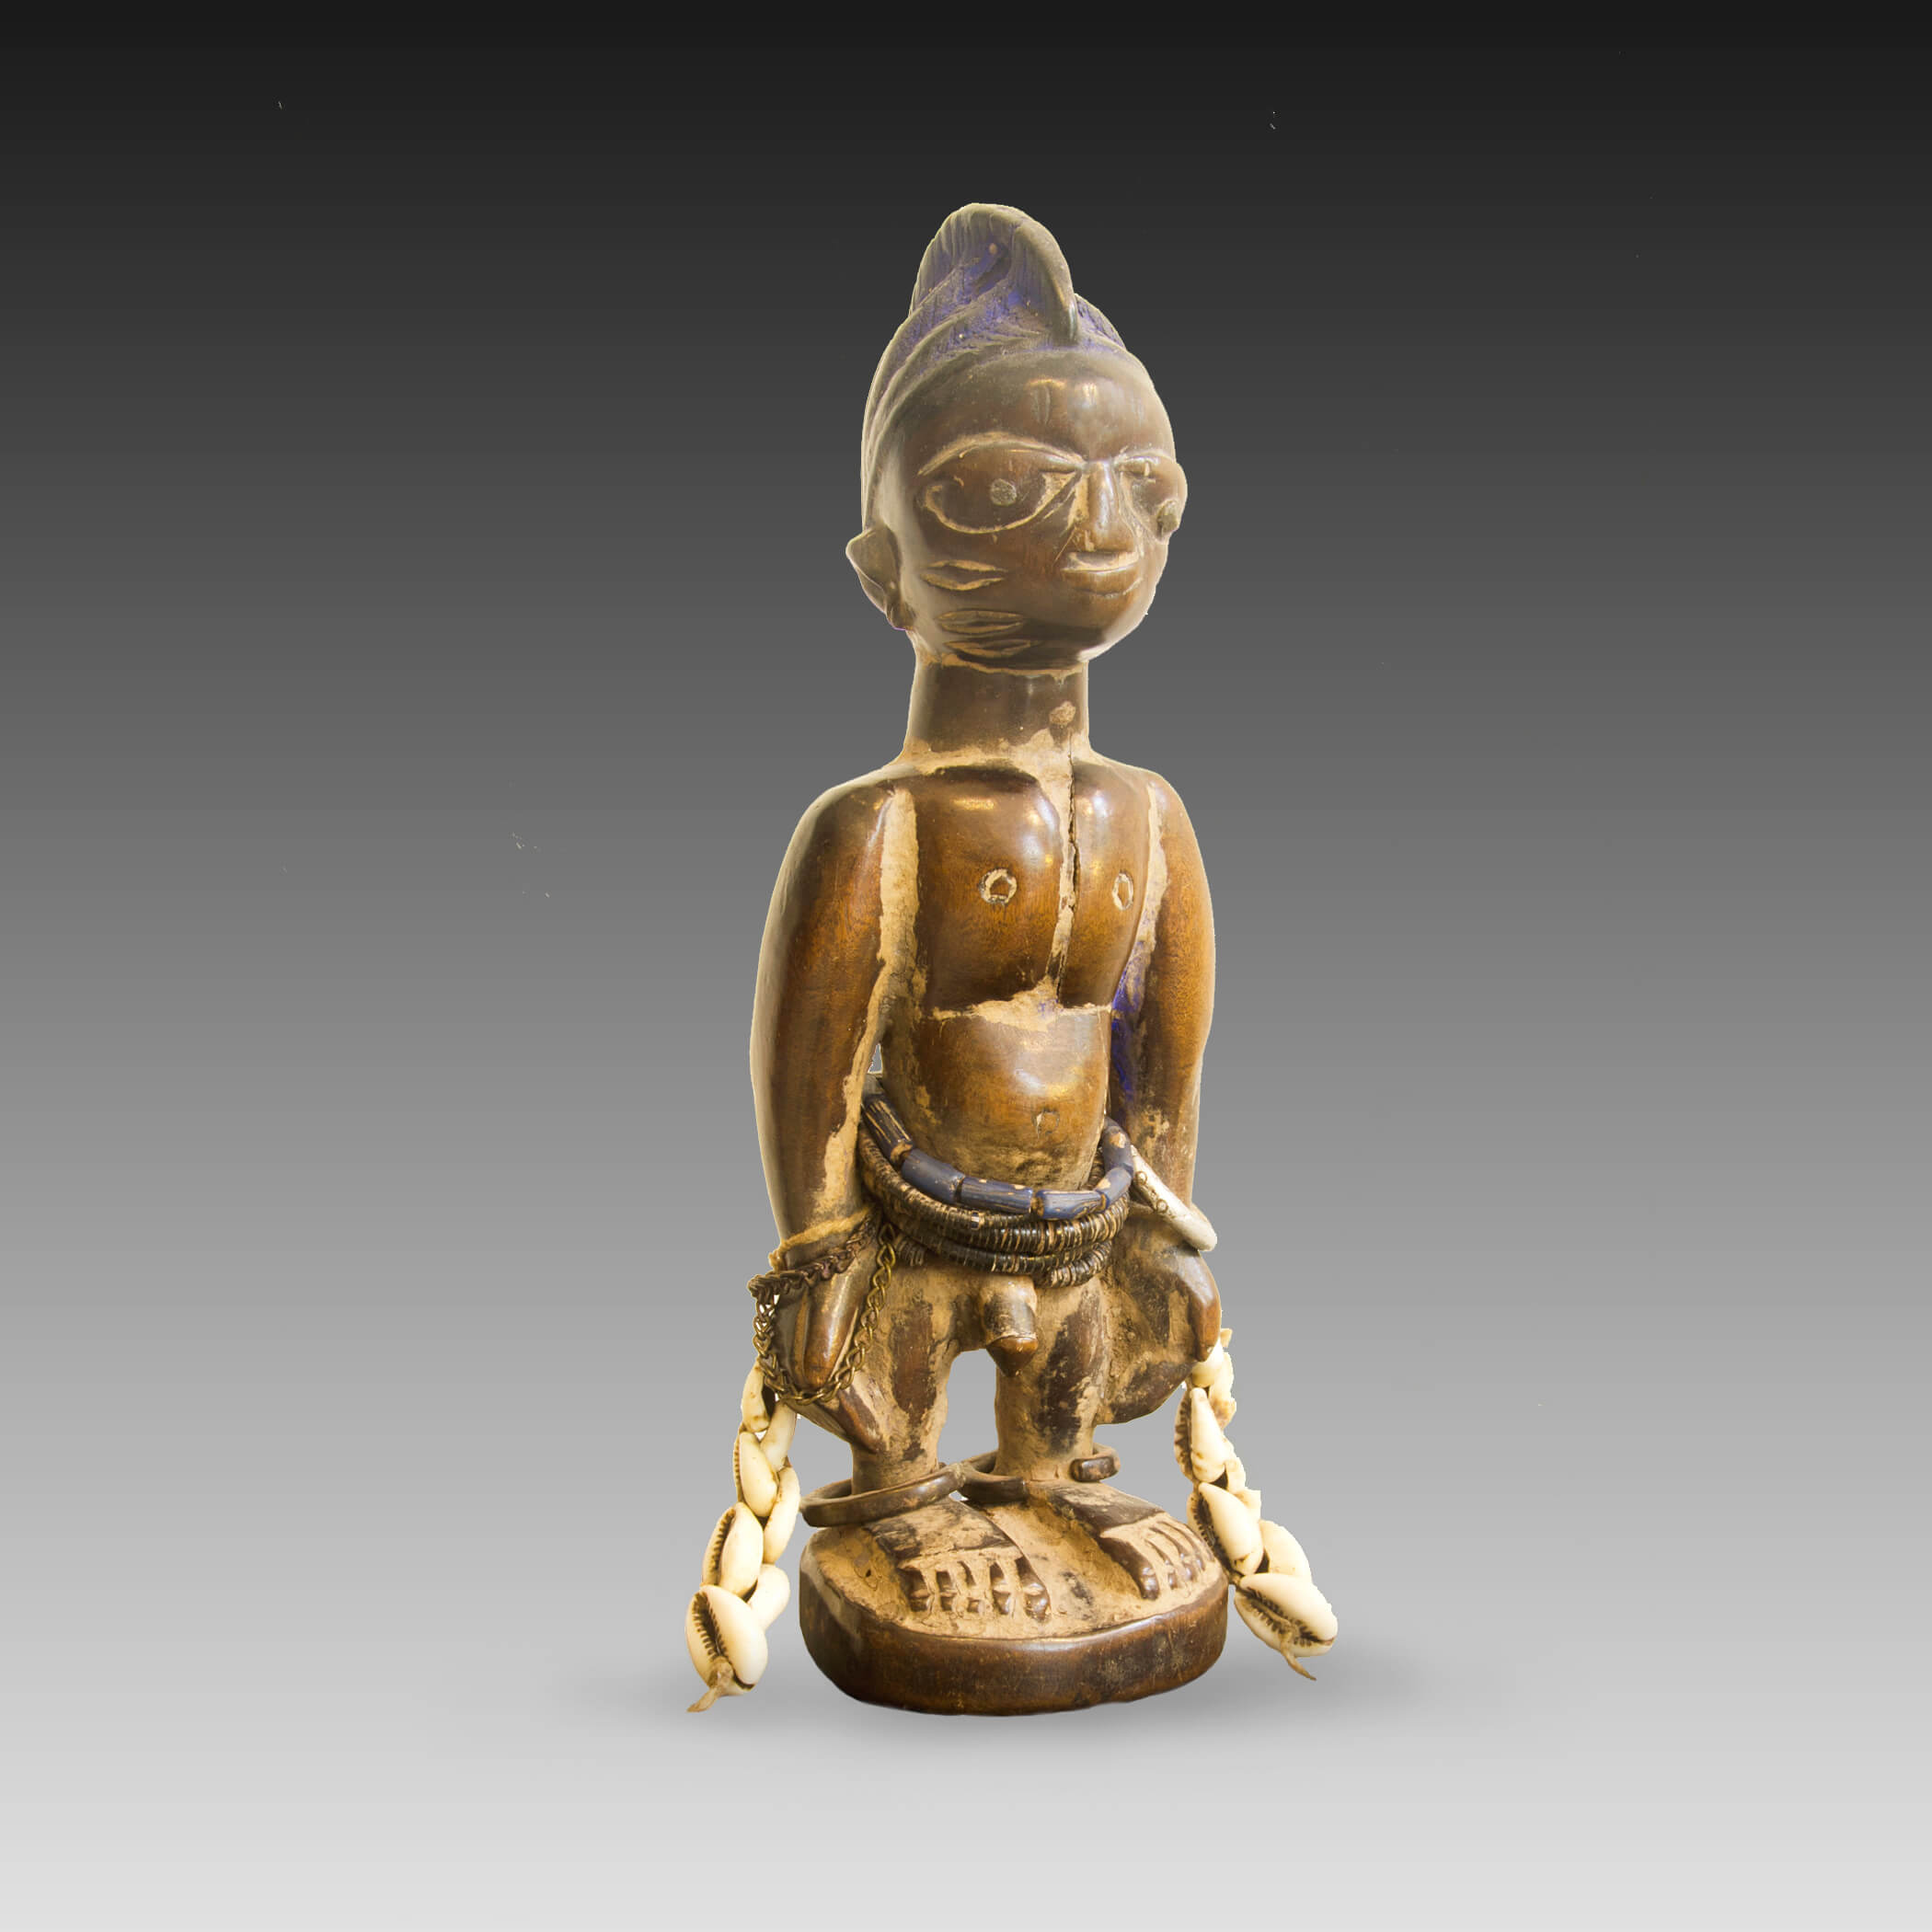 An Ibeji figure